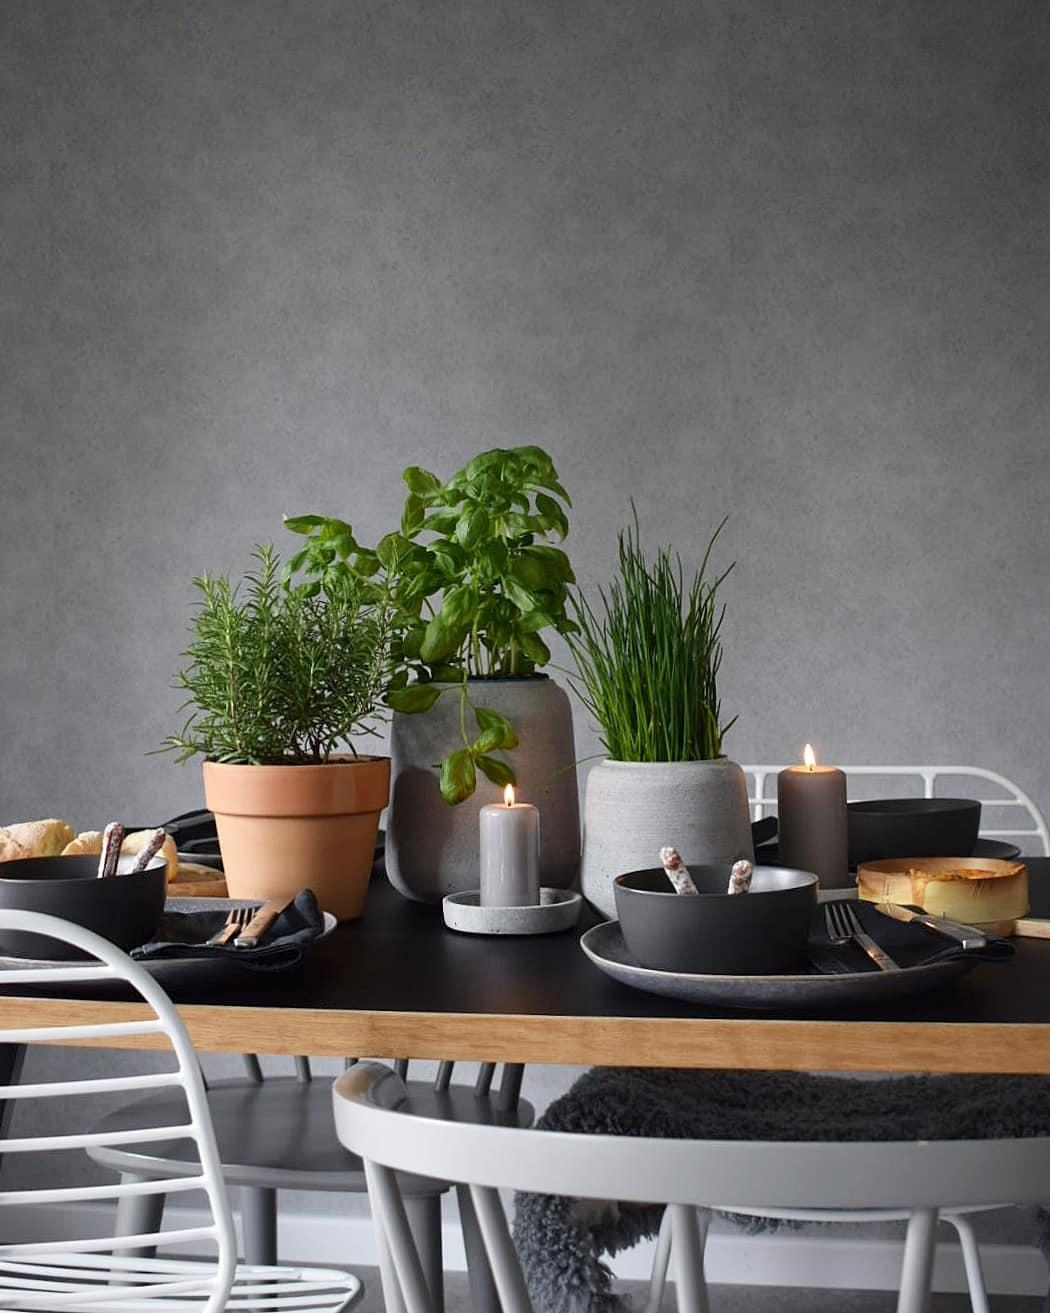 #tisch #tablesetting #dinner #abendbrot #onthetable herbs